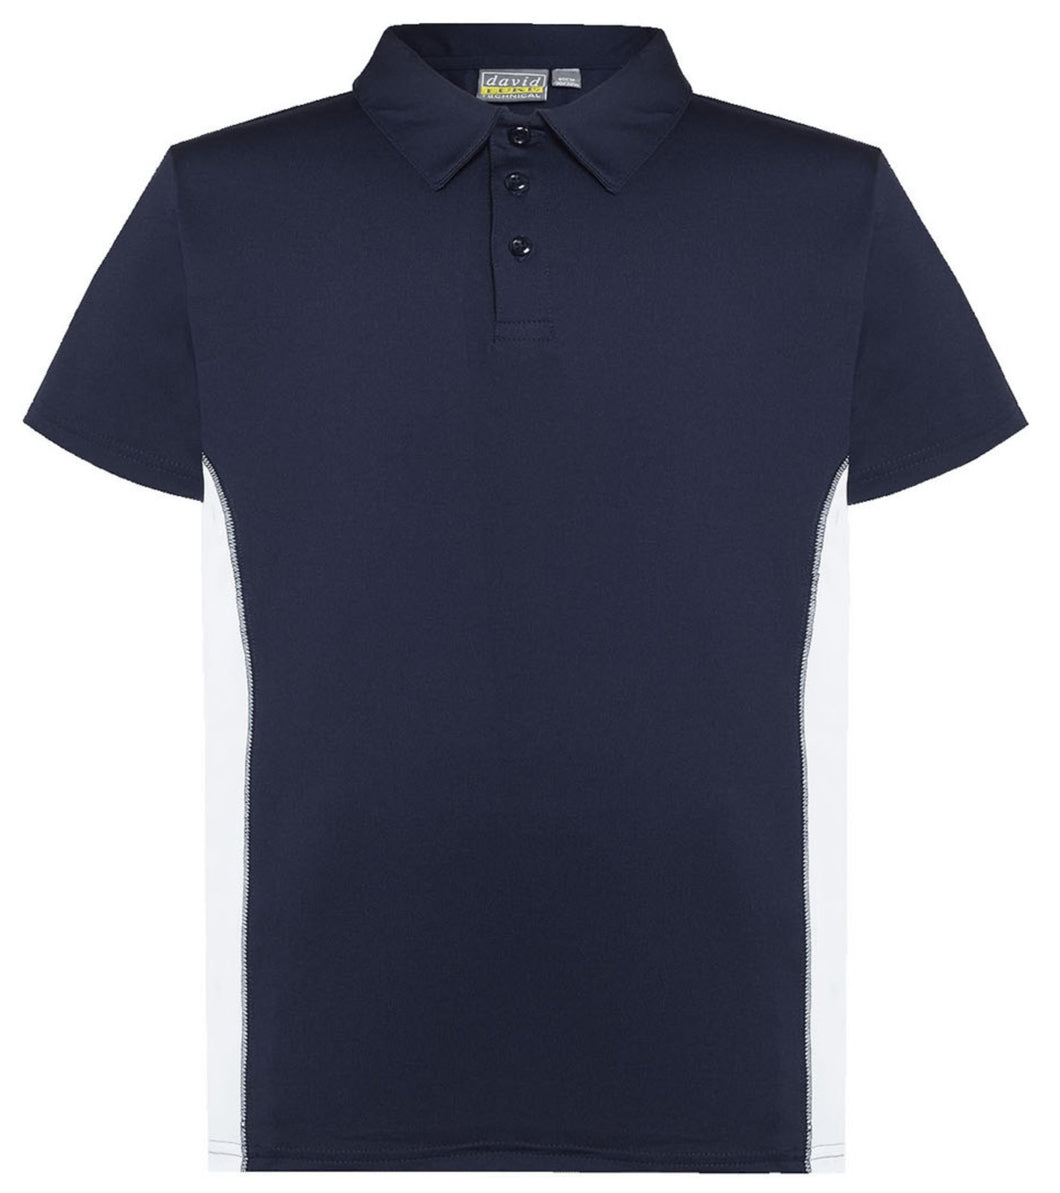 Navy/White Contrast Polo Shirt